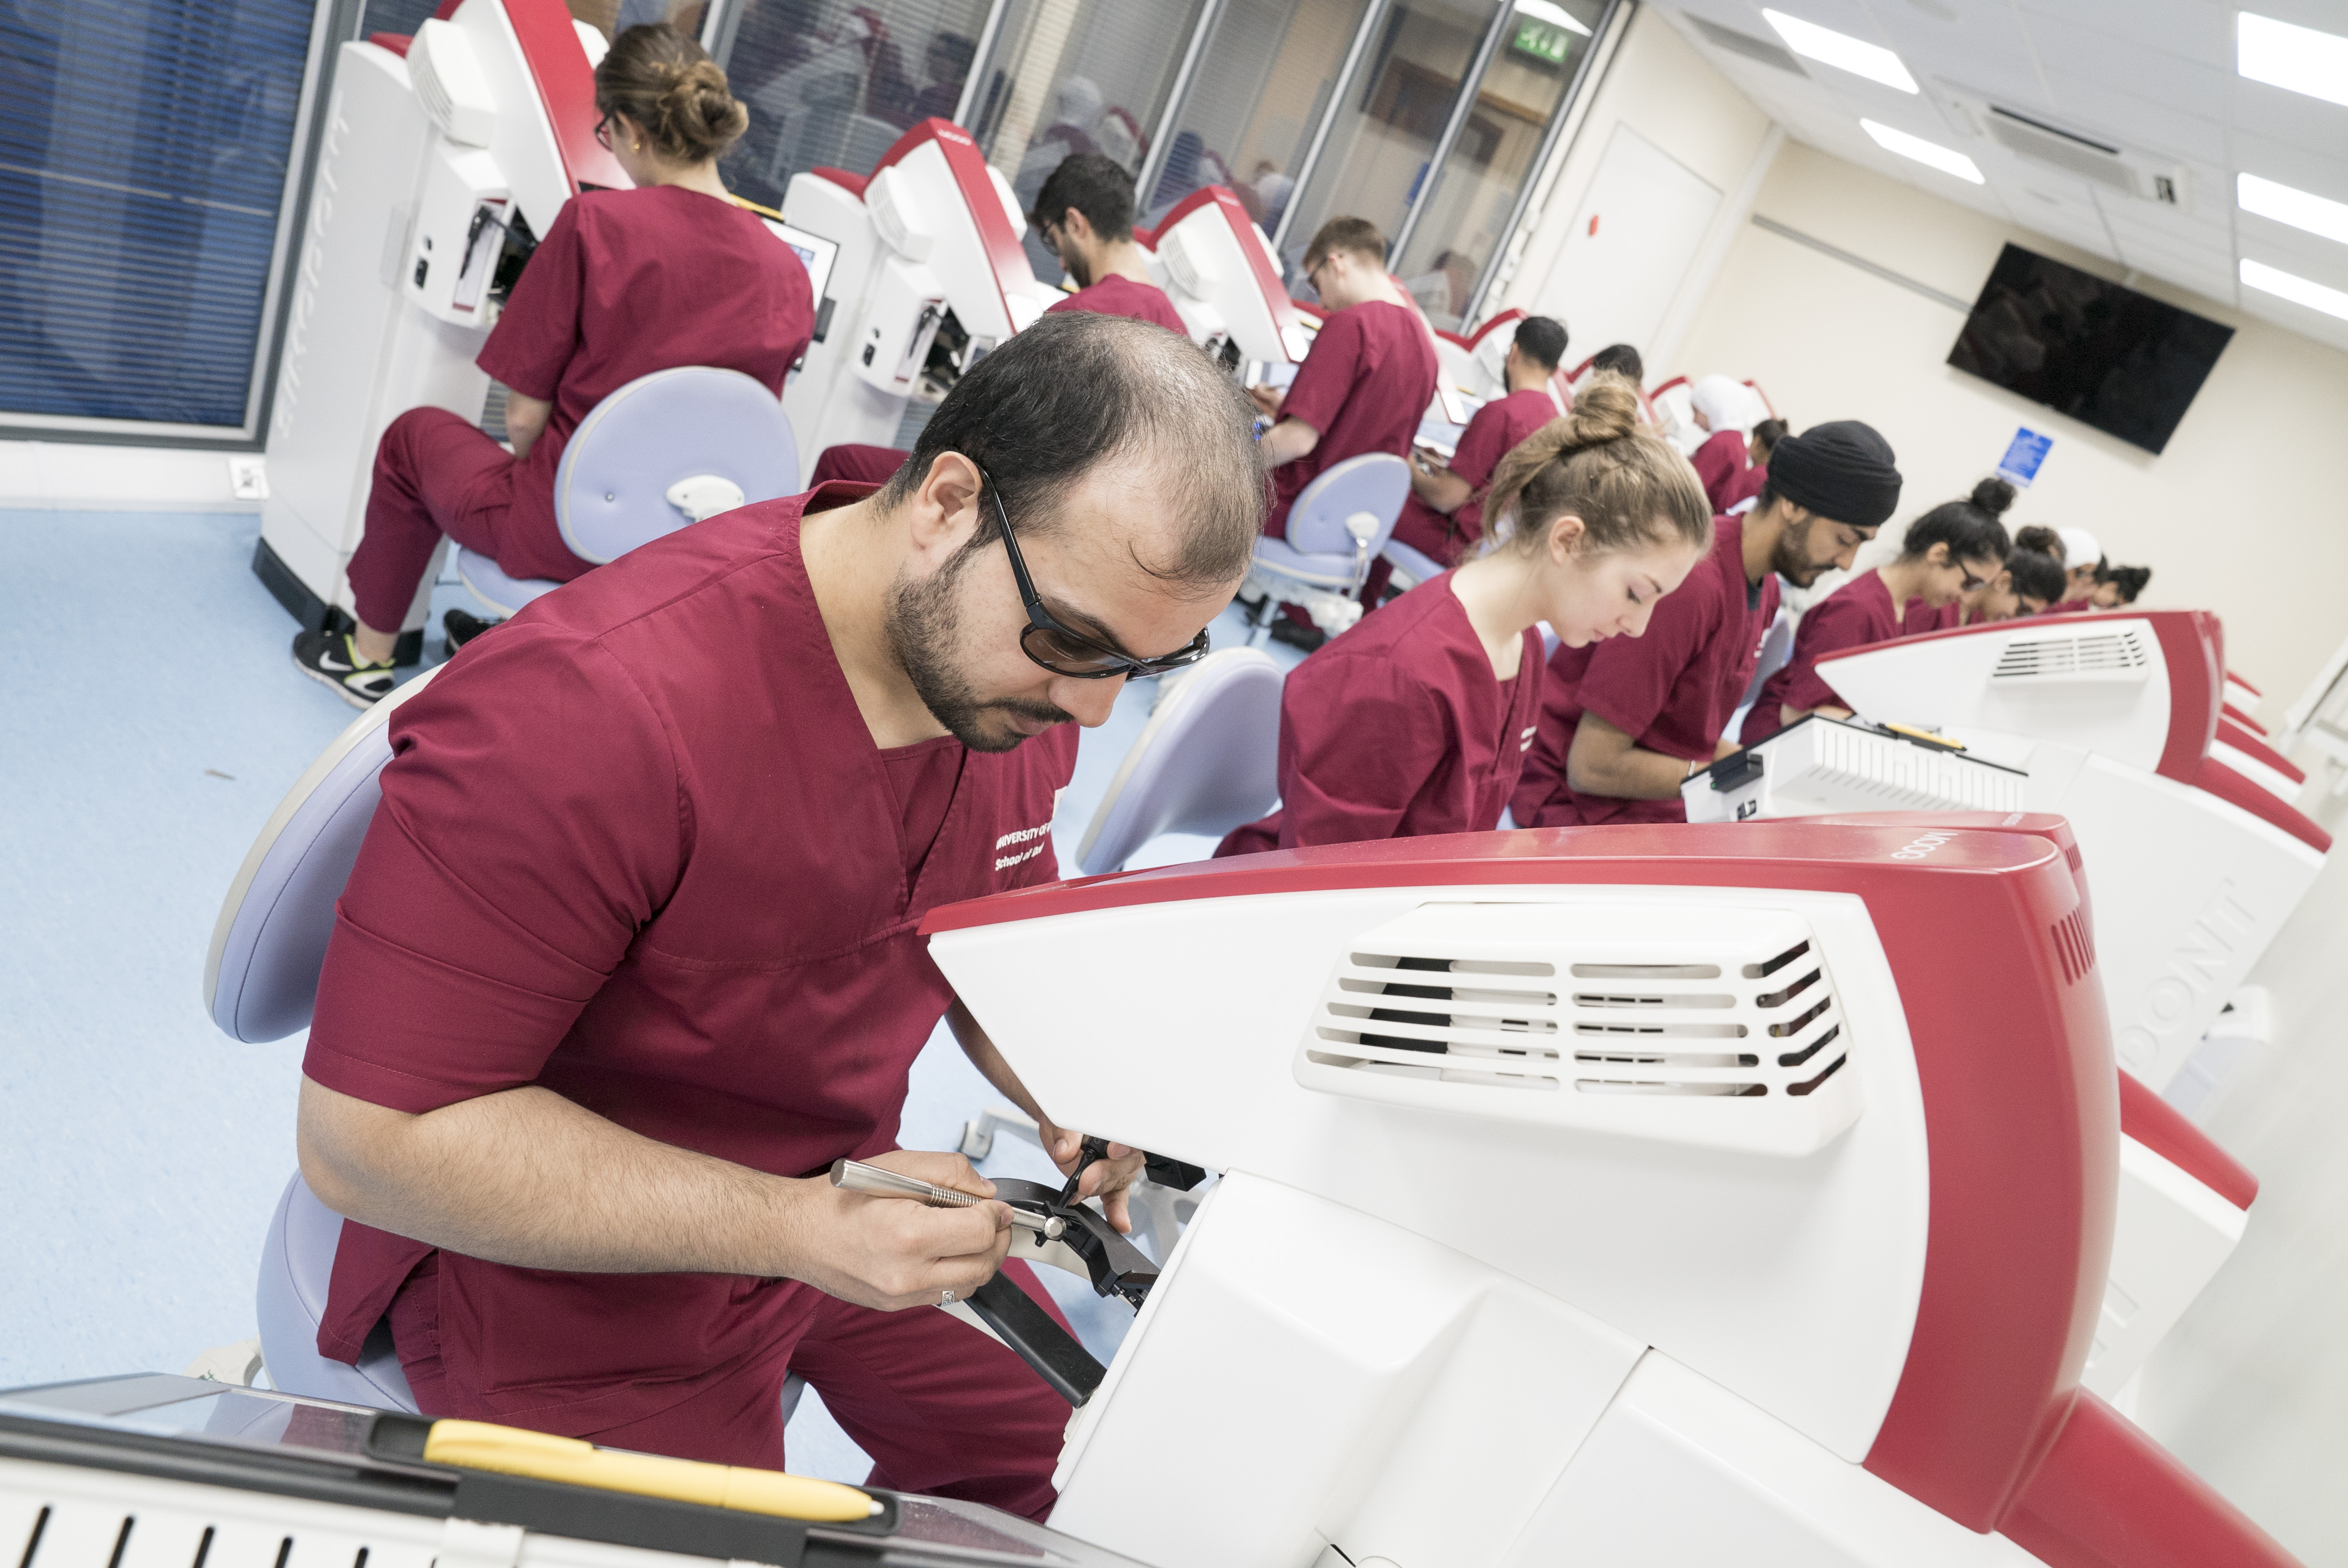 Dentistry students - Leeds Centre for Immersive Technologies